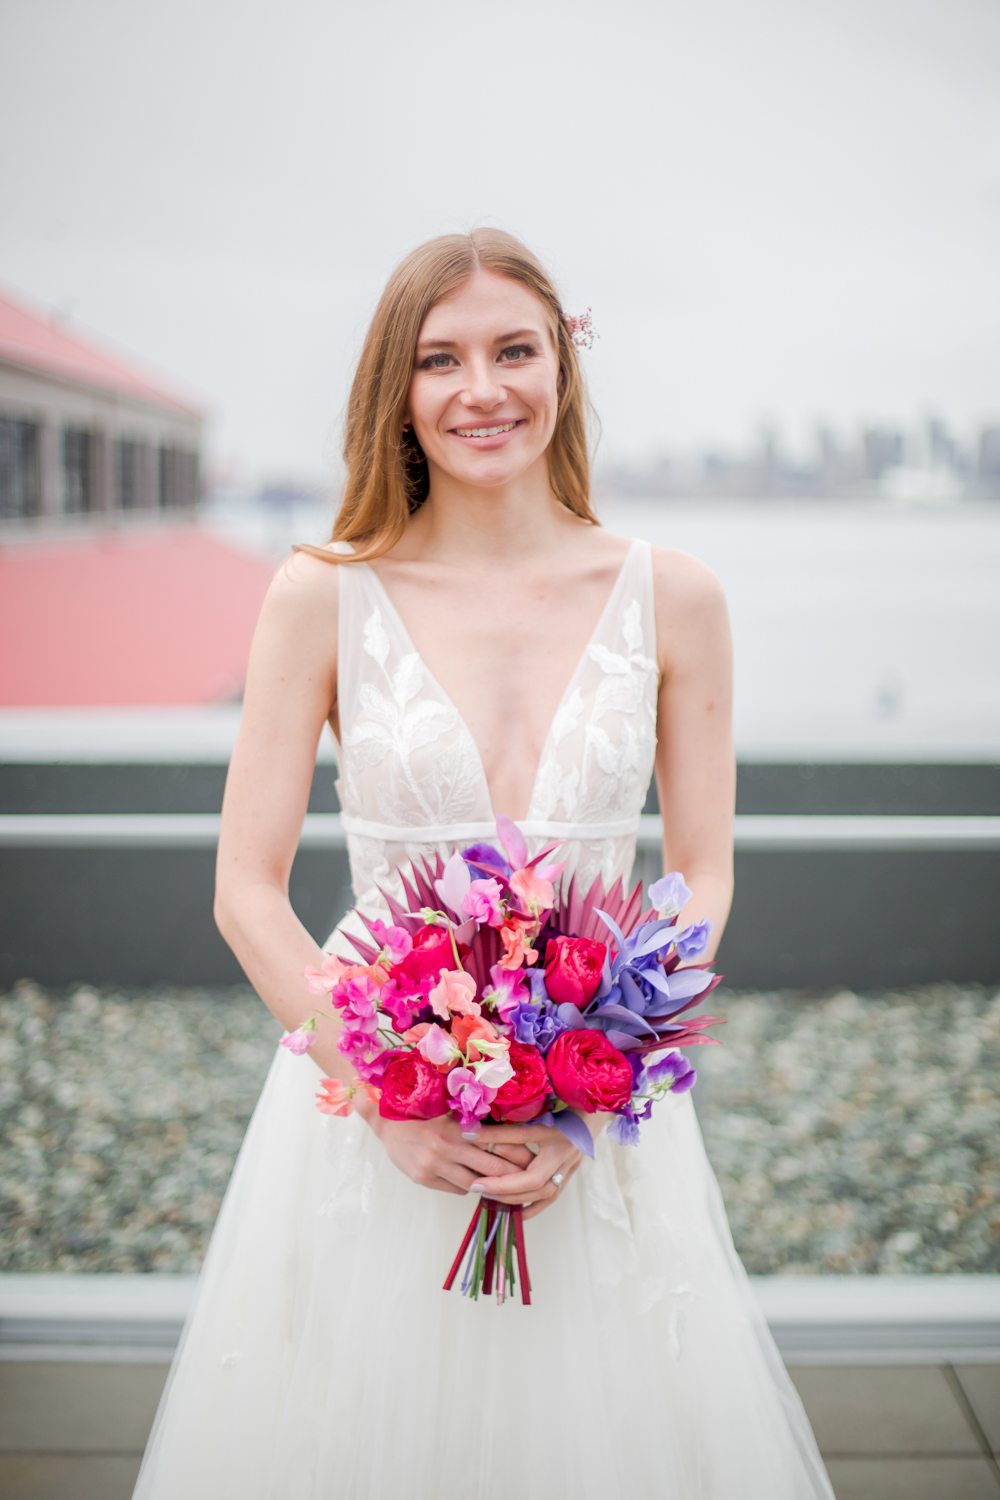 The bridal beauty was subtle accented and highlighted with simple hair and a touch of dried blooms